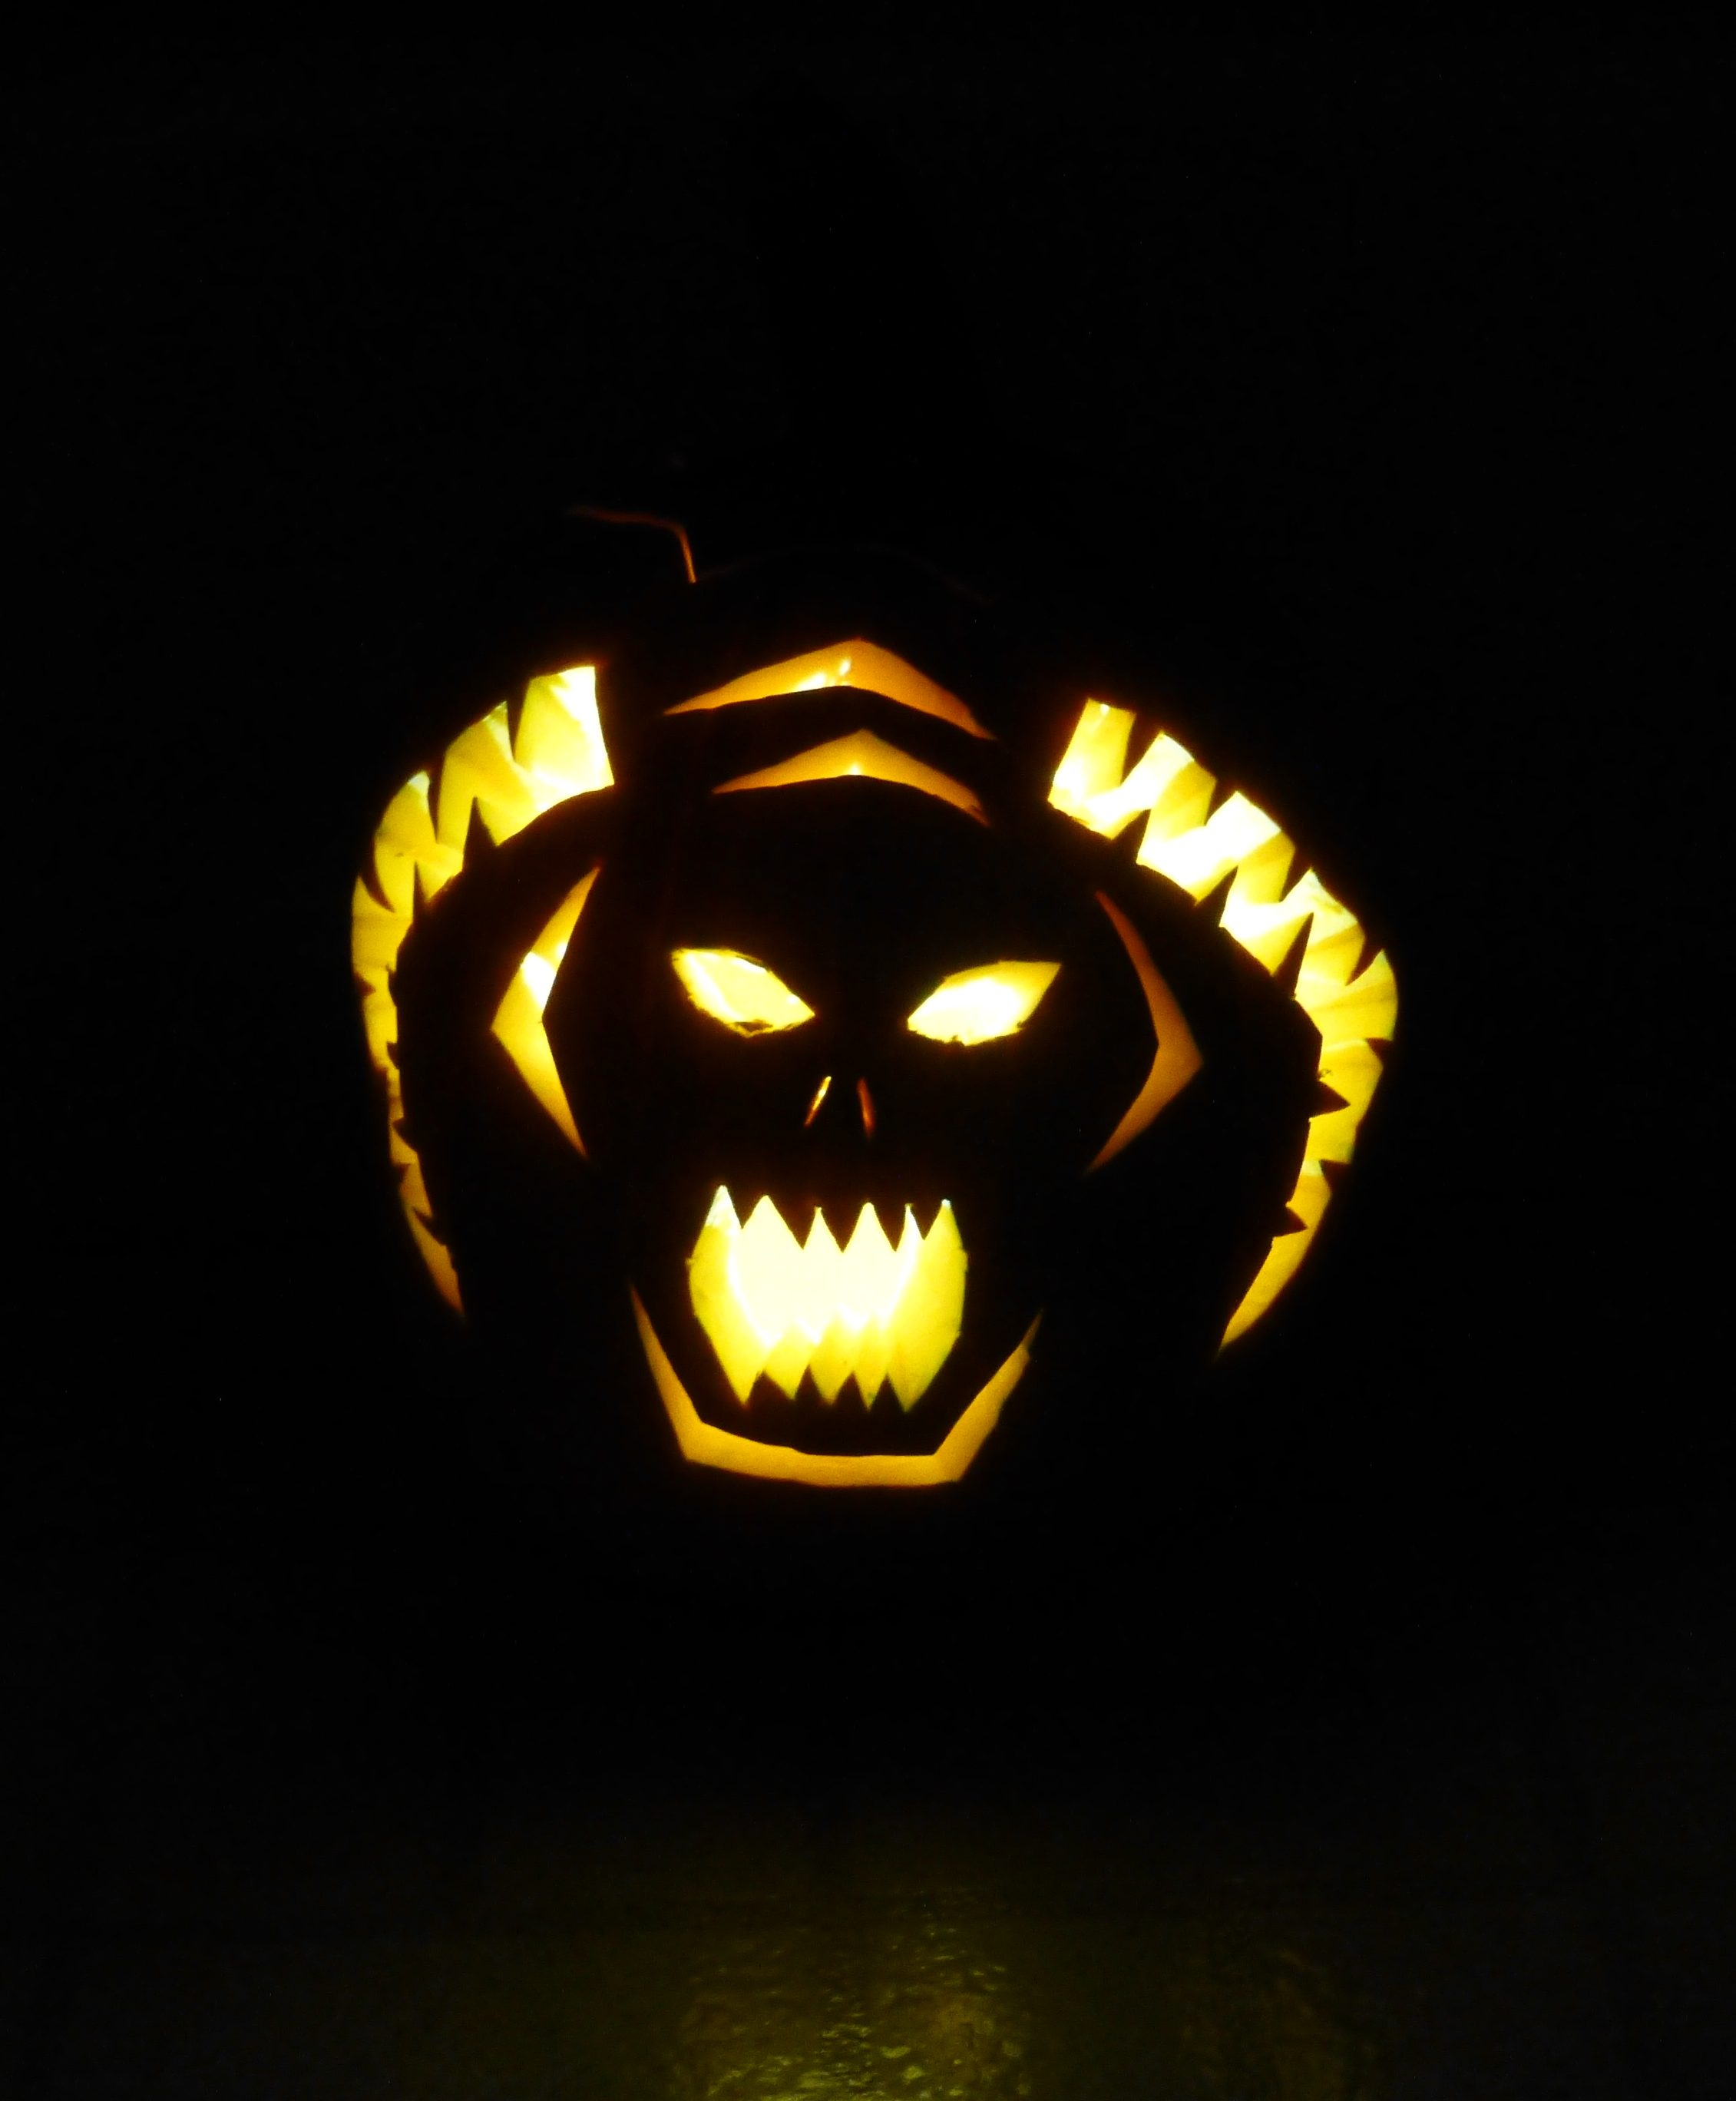 Lord of the Rings Balrog pumpkin